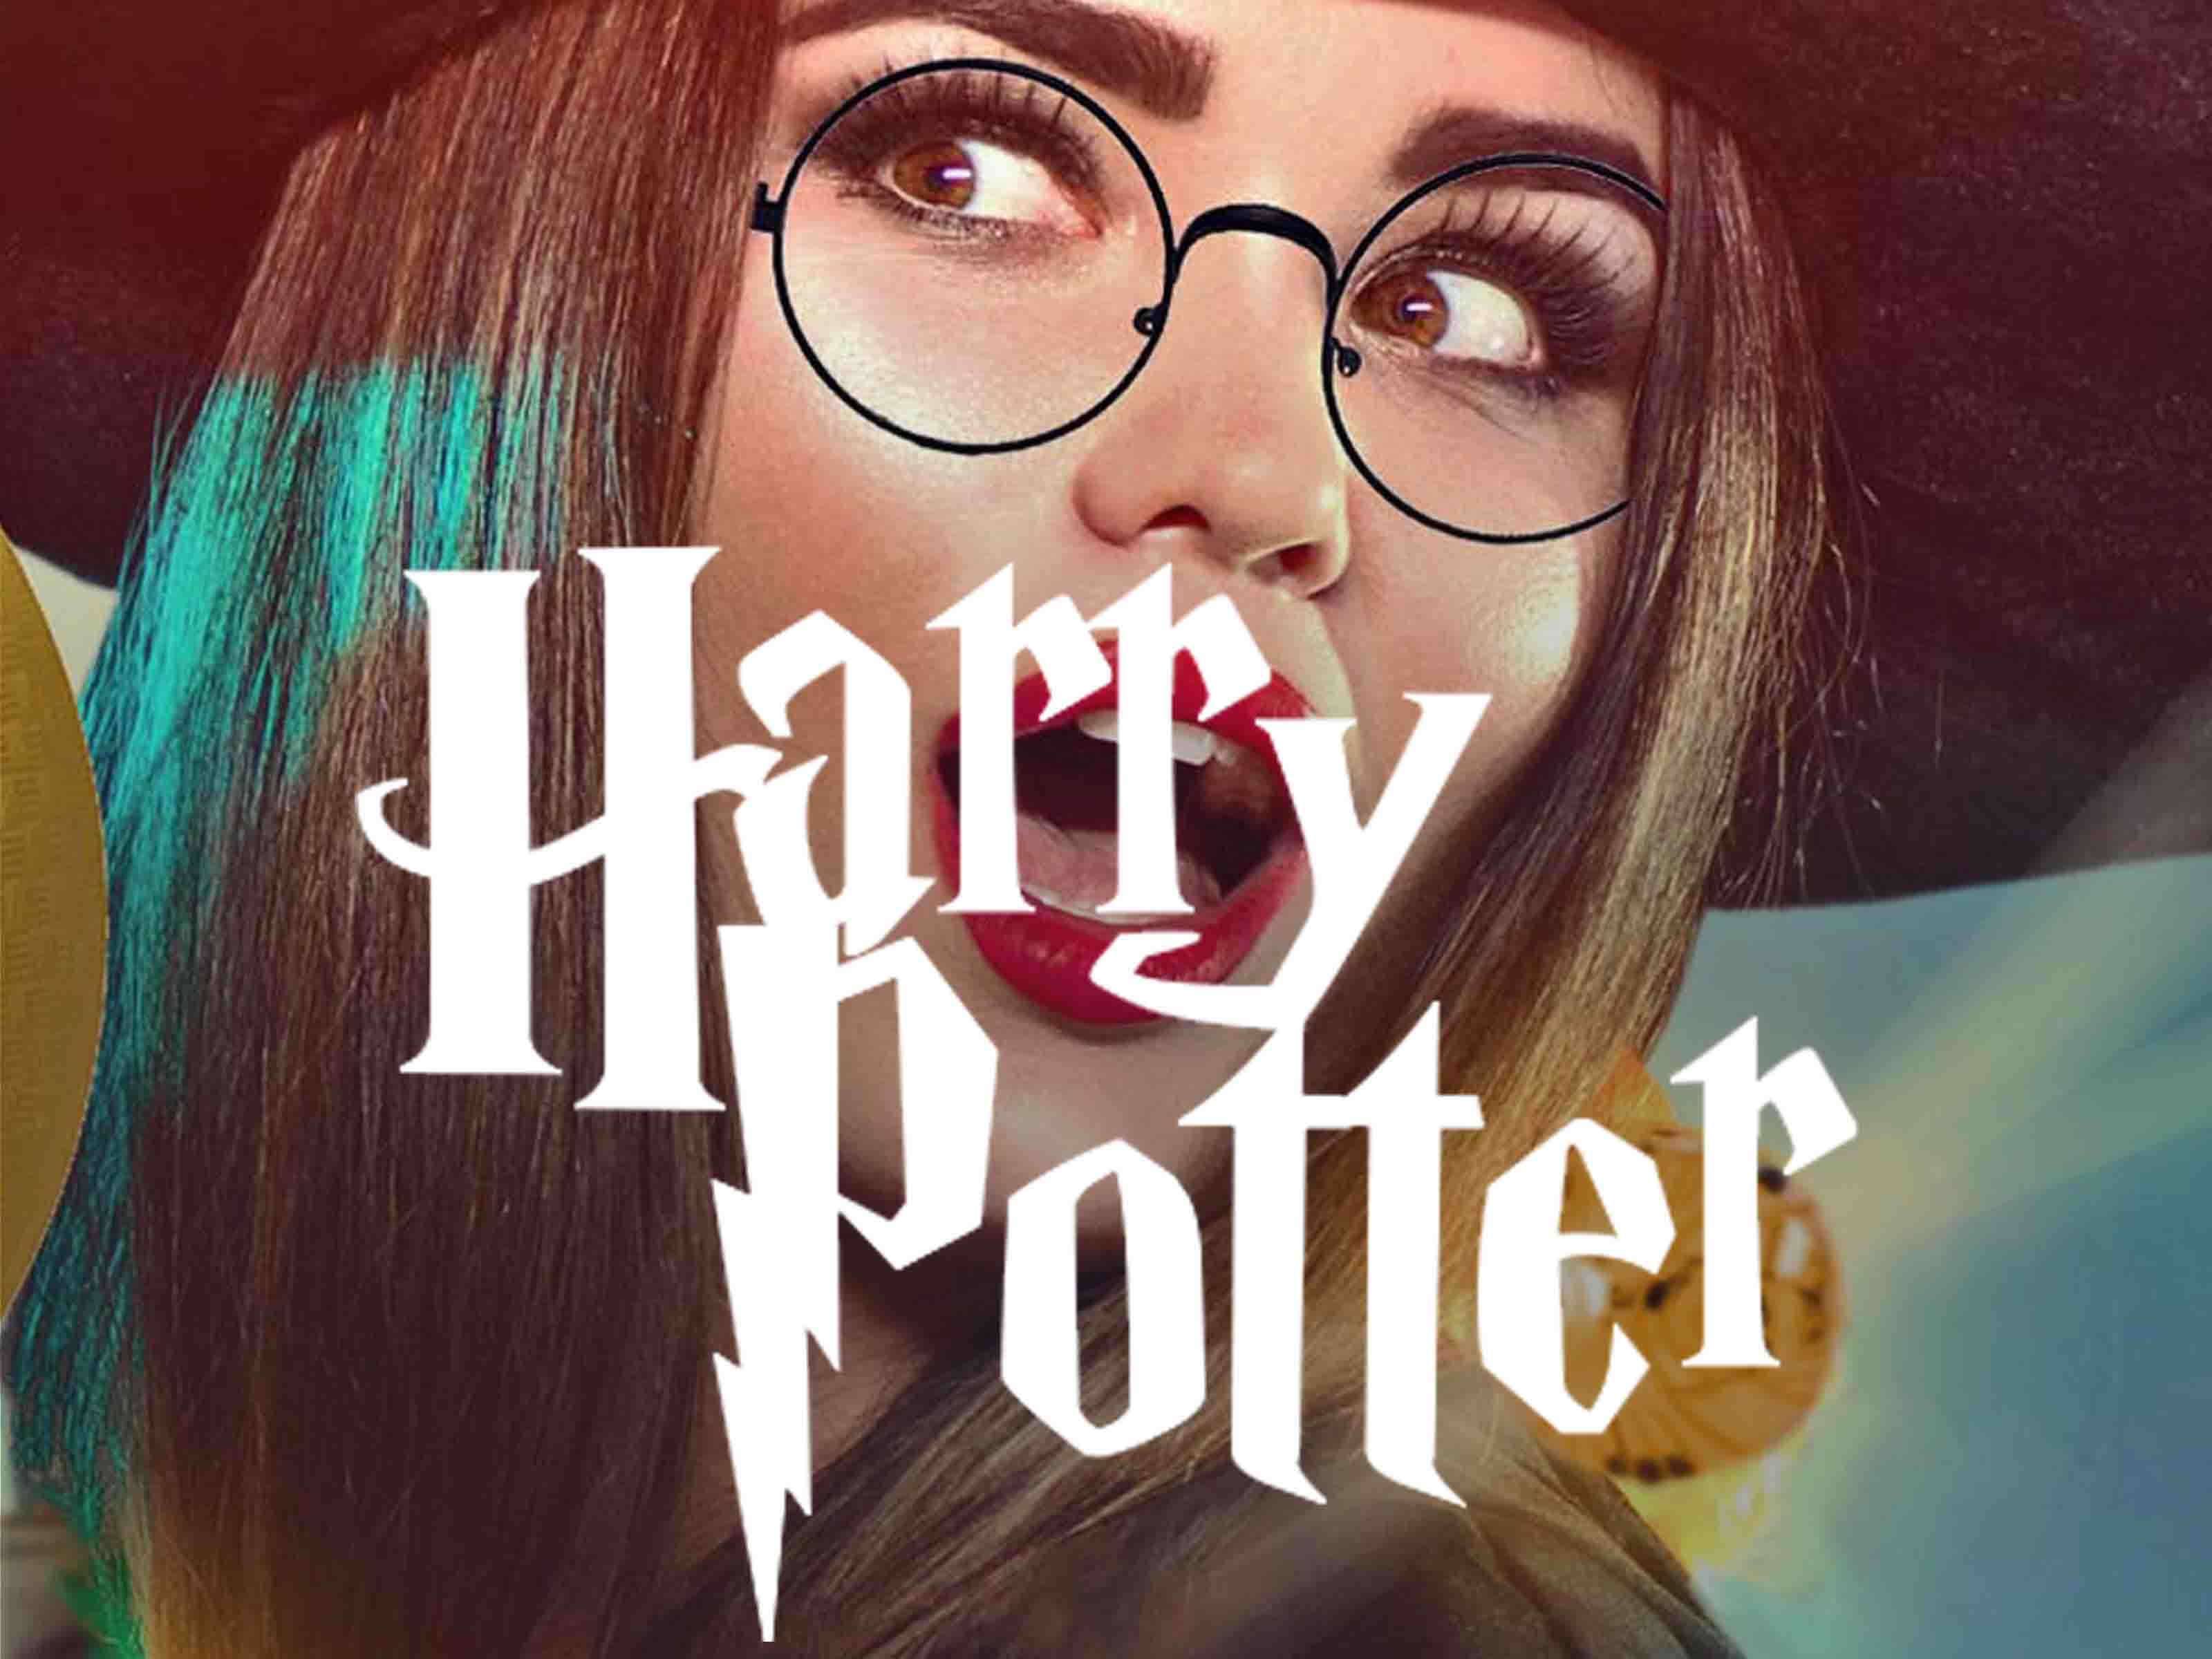 Hen Party Themes - Harry Potter